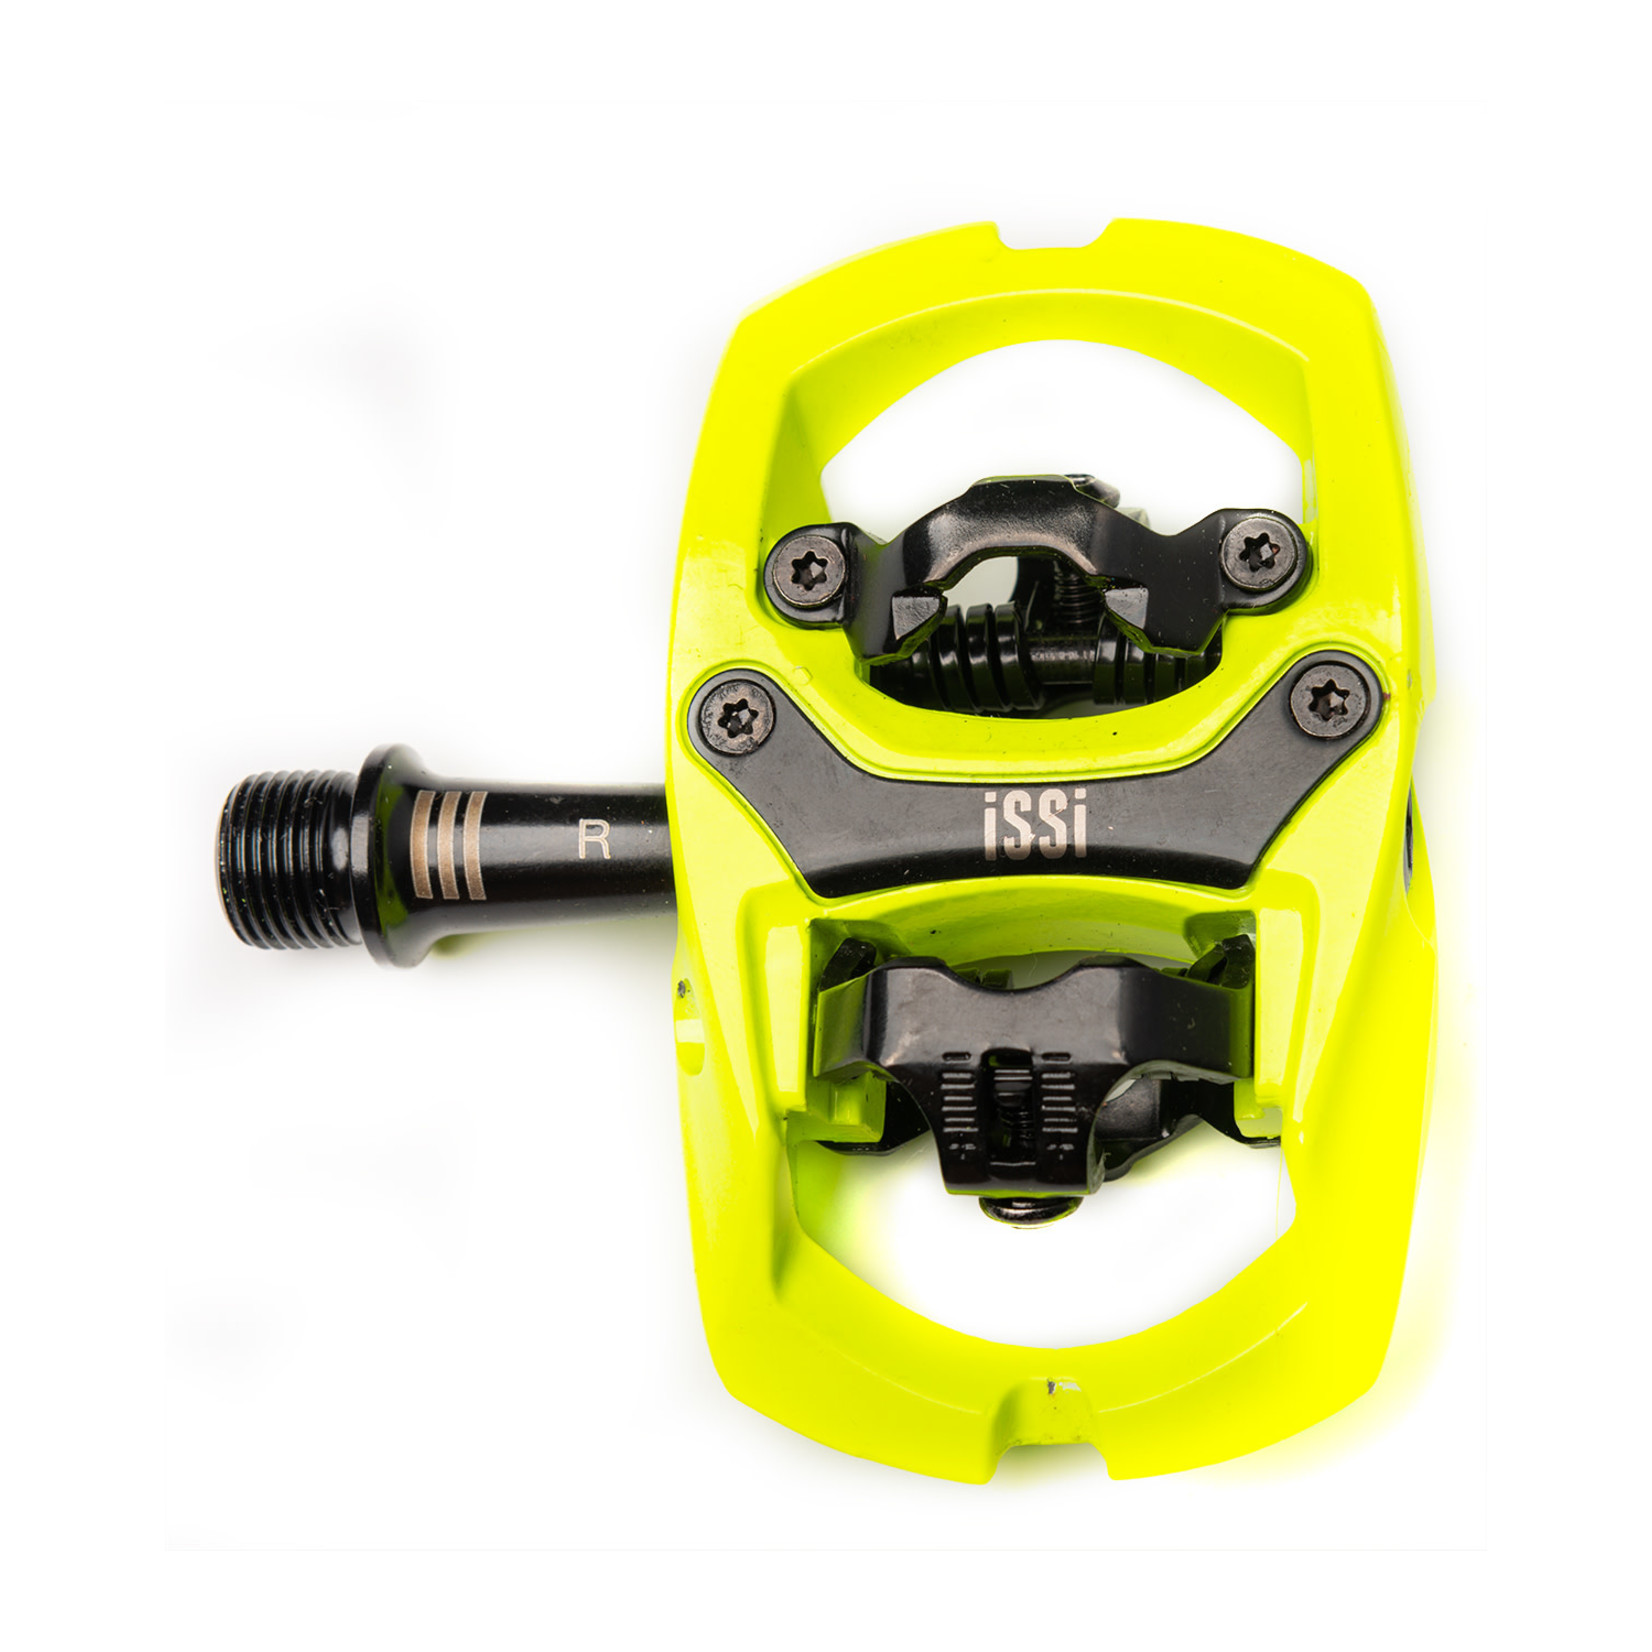 """iSSi iSSi Trail III Pedals - Dual Sided Clipless with Platform, Aluminum, 9/16"""", Yellow"""